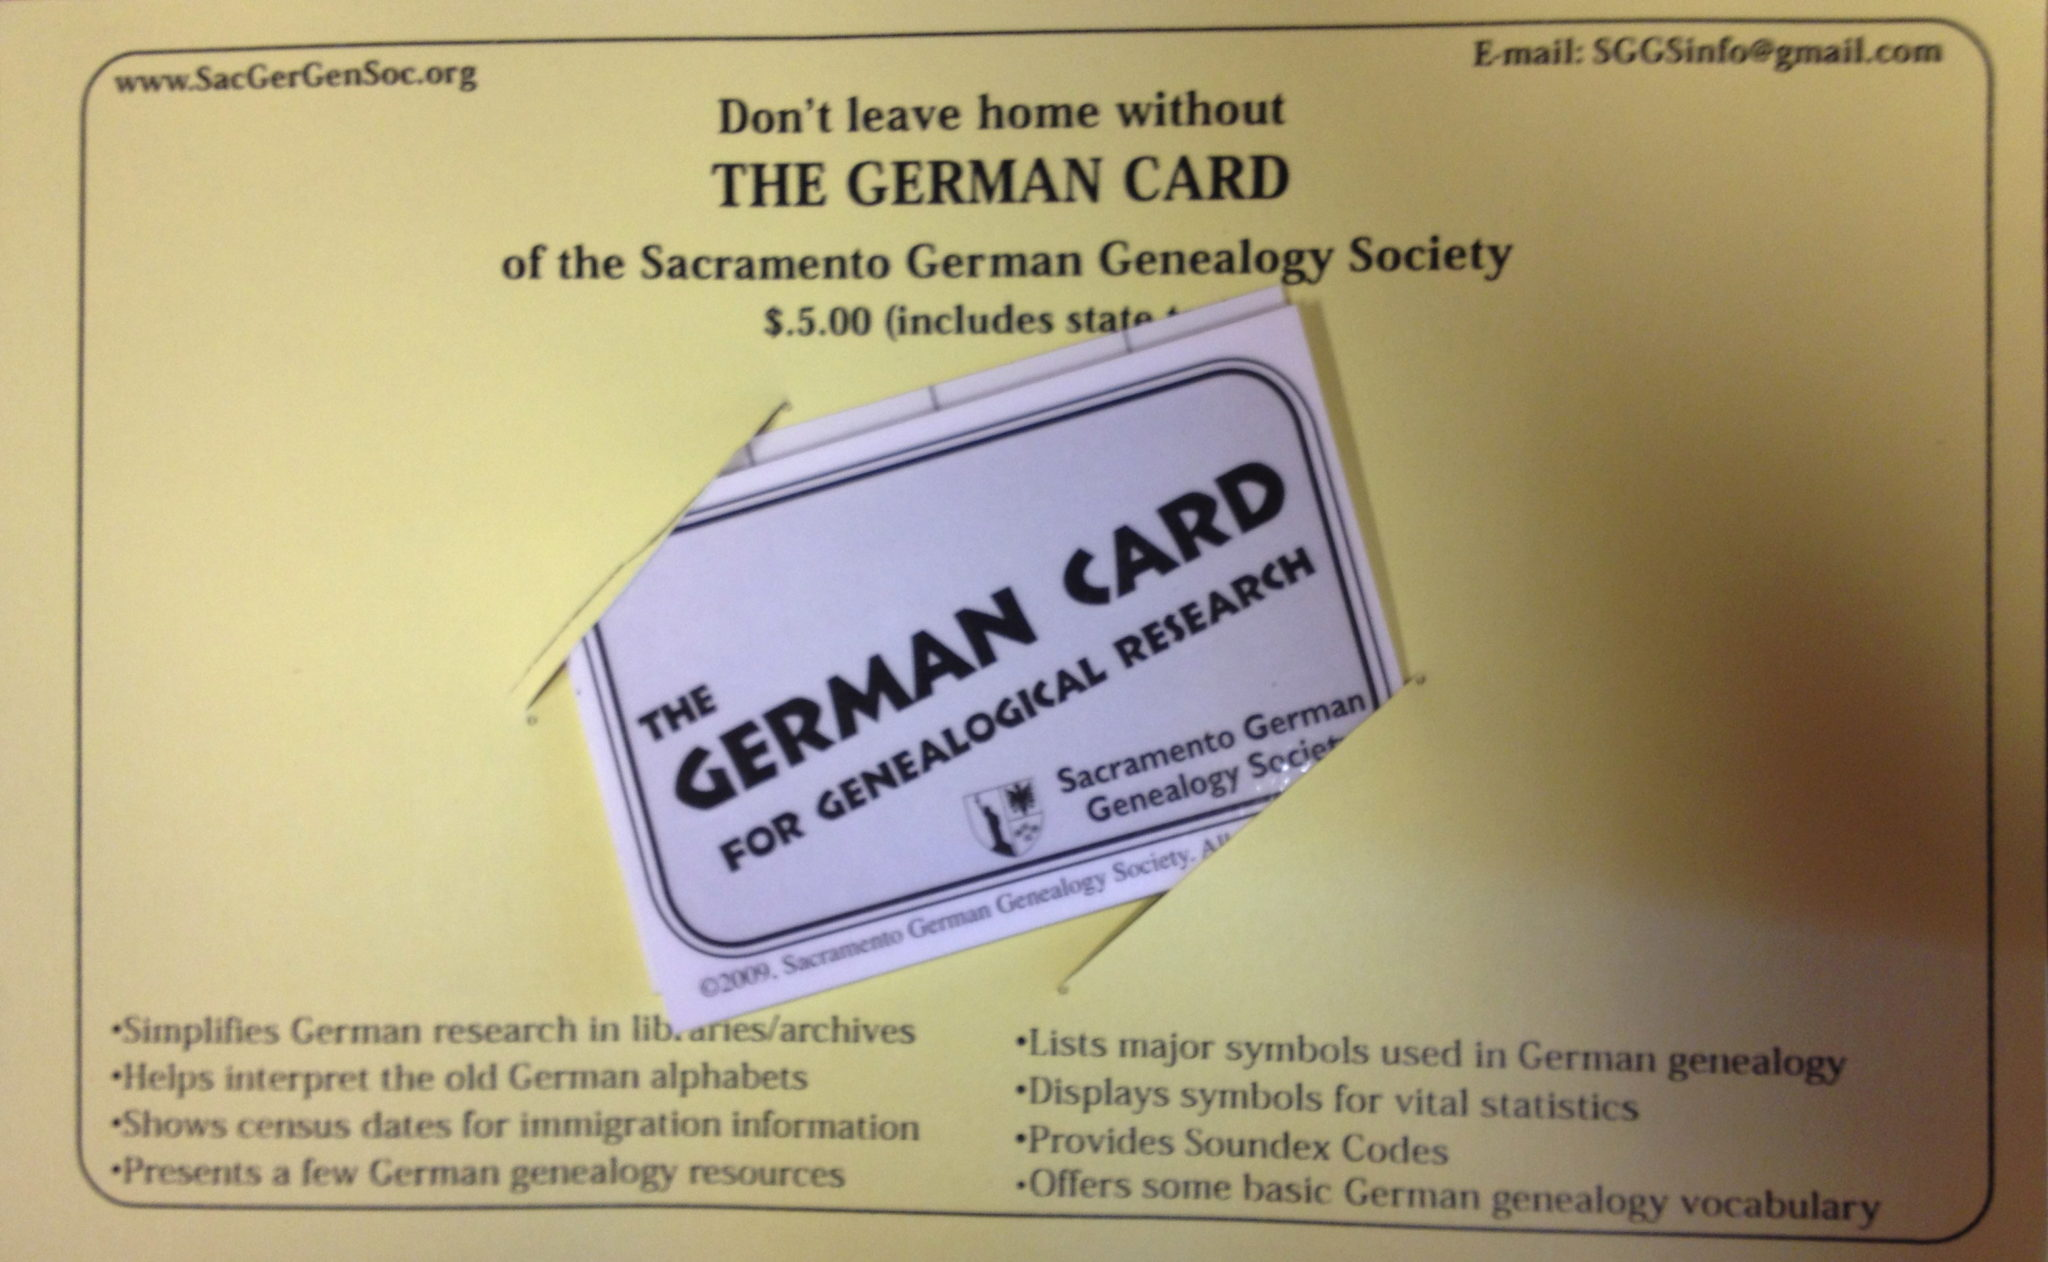 German Card for Genealogy Research | Sassy Jane Genealogy